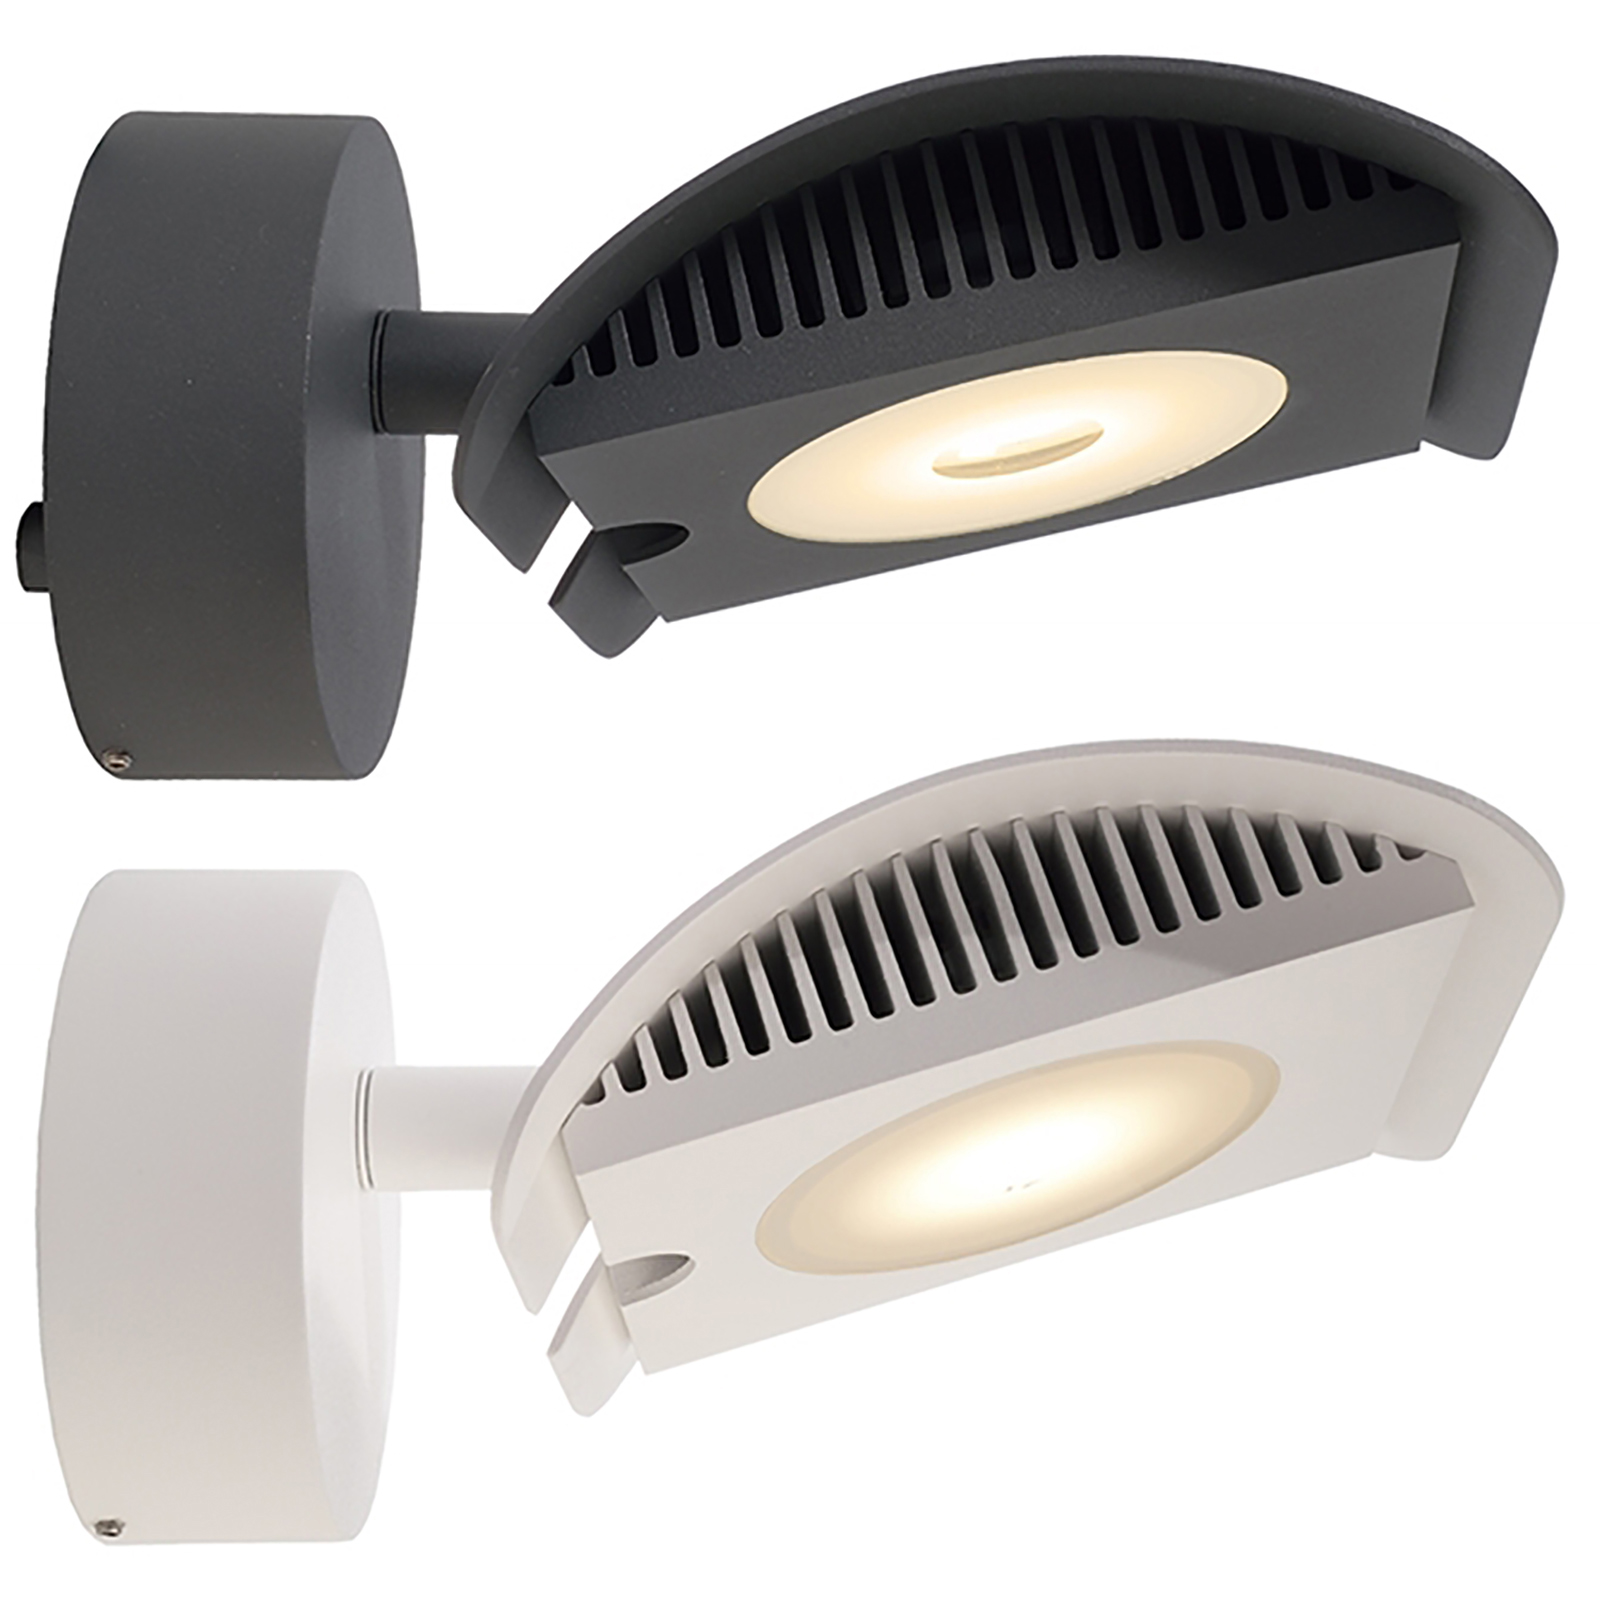 LED spotlight 15W applique adjustable projector exterior lights shop 3000K IP65